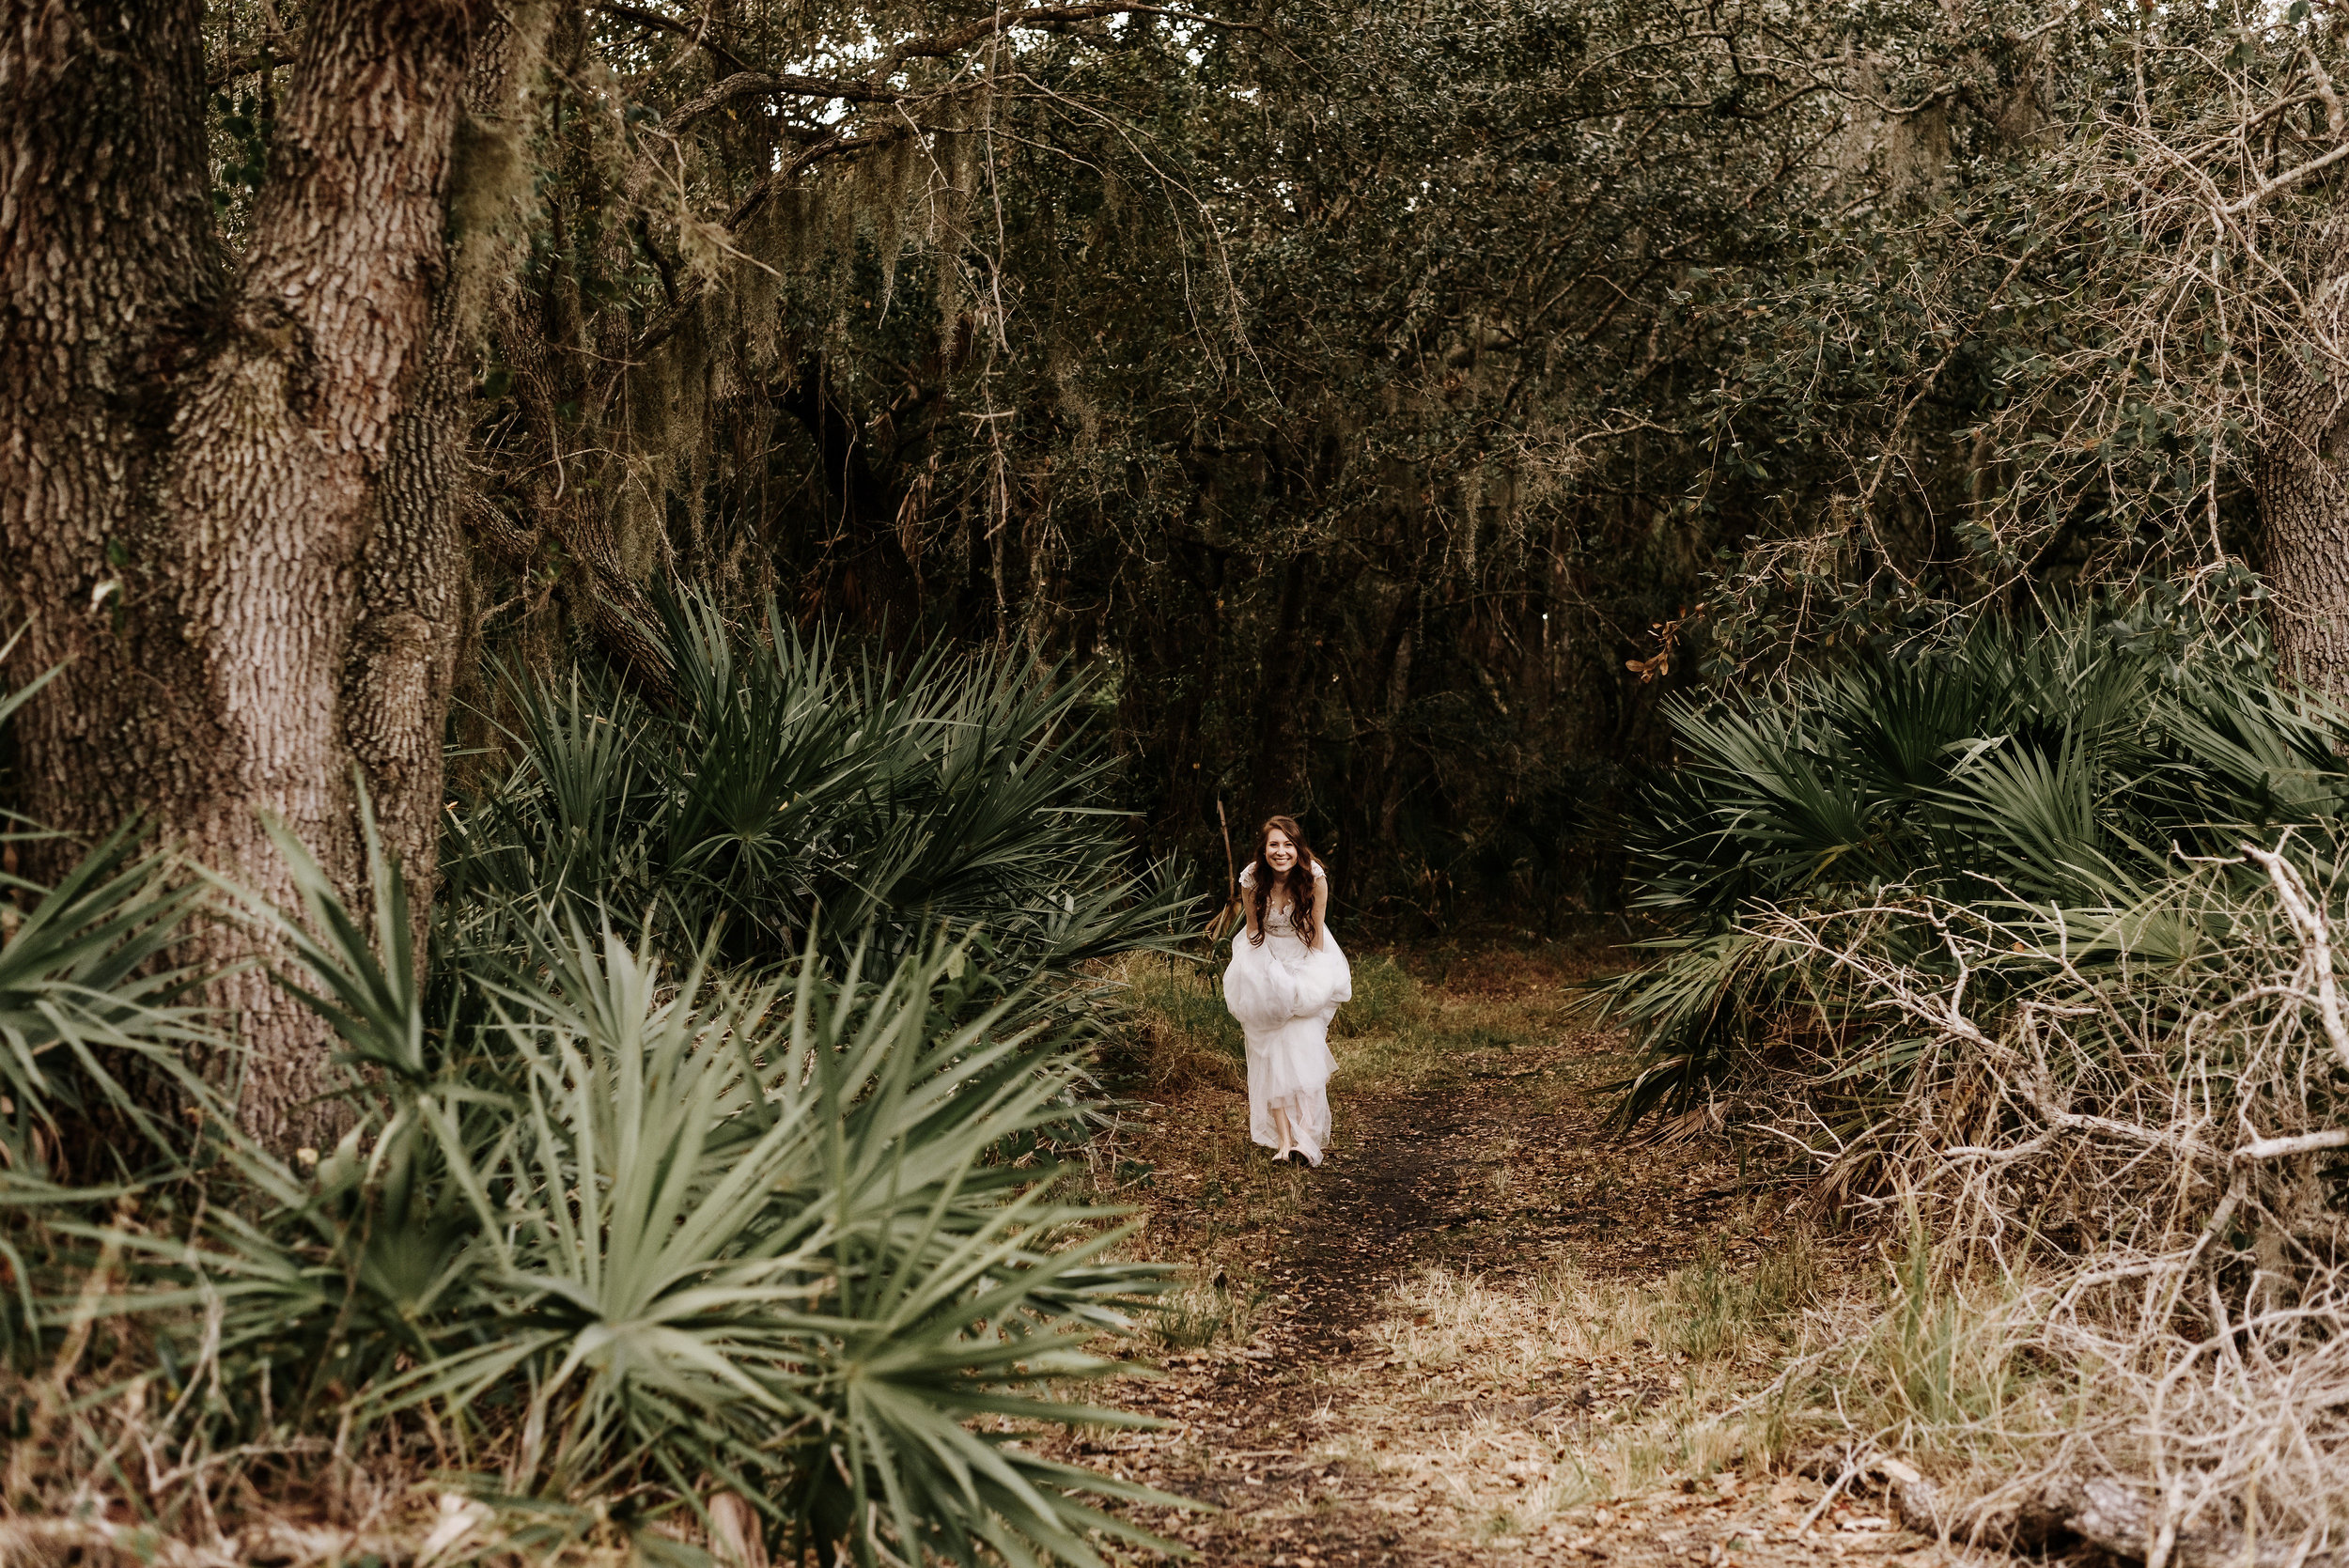 Jess_Micah_Portrait_Session_Wedding_Vero_Beach_Florida_Photography_by_V_0057.jpg